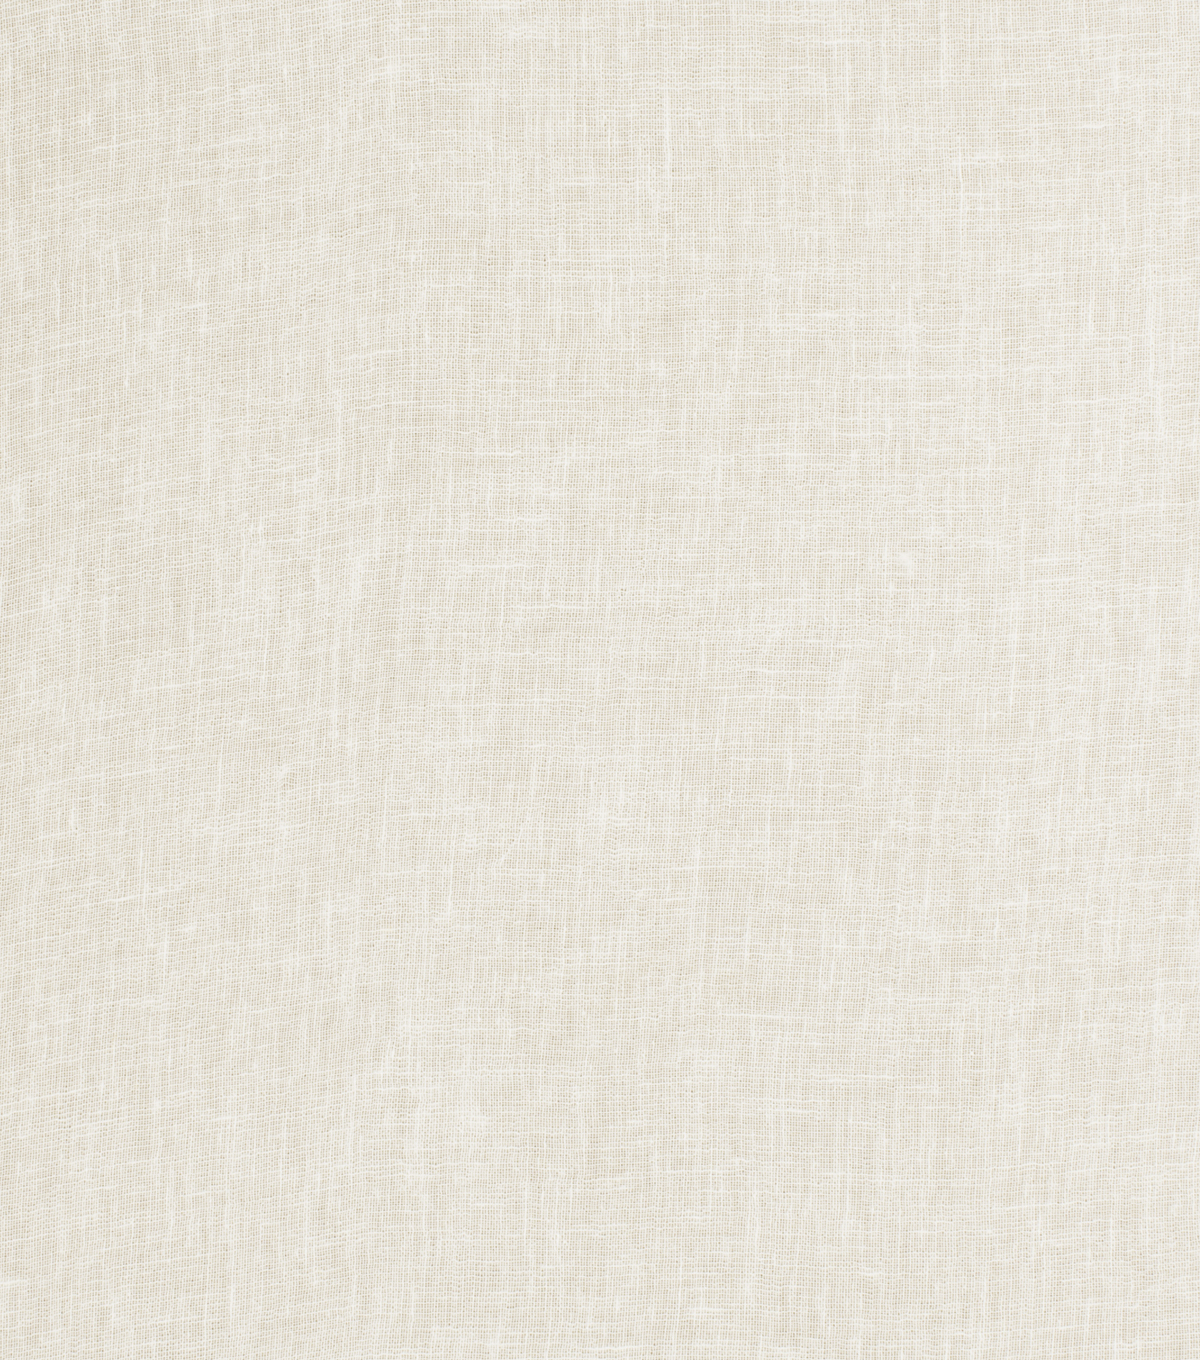 Home Decor 8x8 Fabric Swatch-Eaton Square Romney Ivory